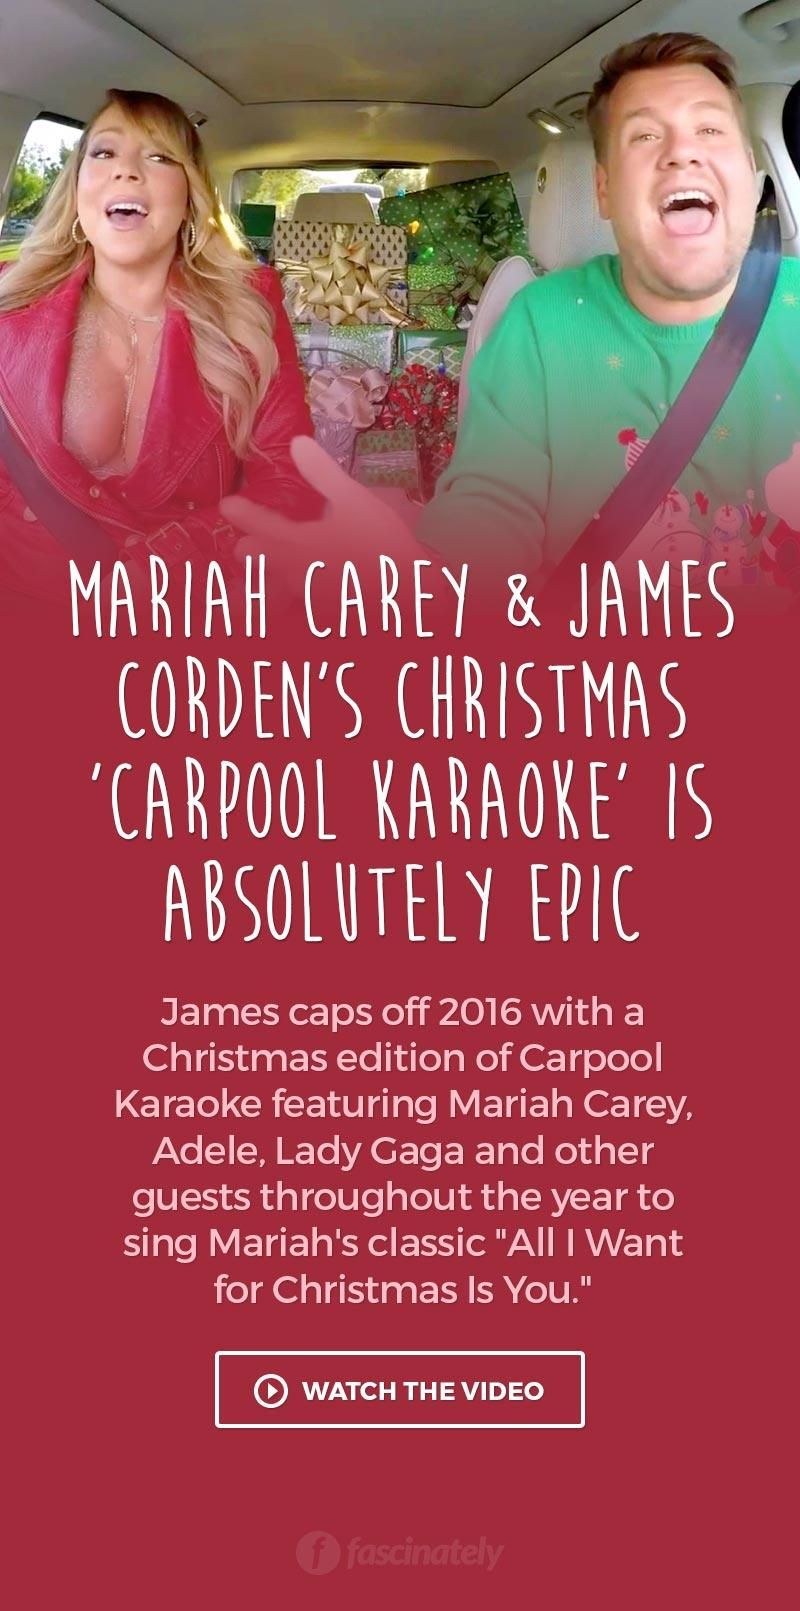 Mariah Carey James Corden S Christmas Carpool Karaoke Is Absolutely Epic Christmas Carpool Karaoke Mariah Carey Carpool Karaoke